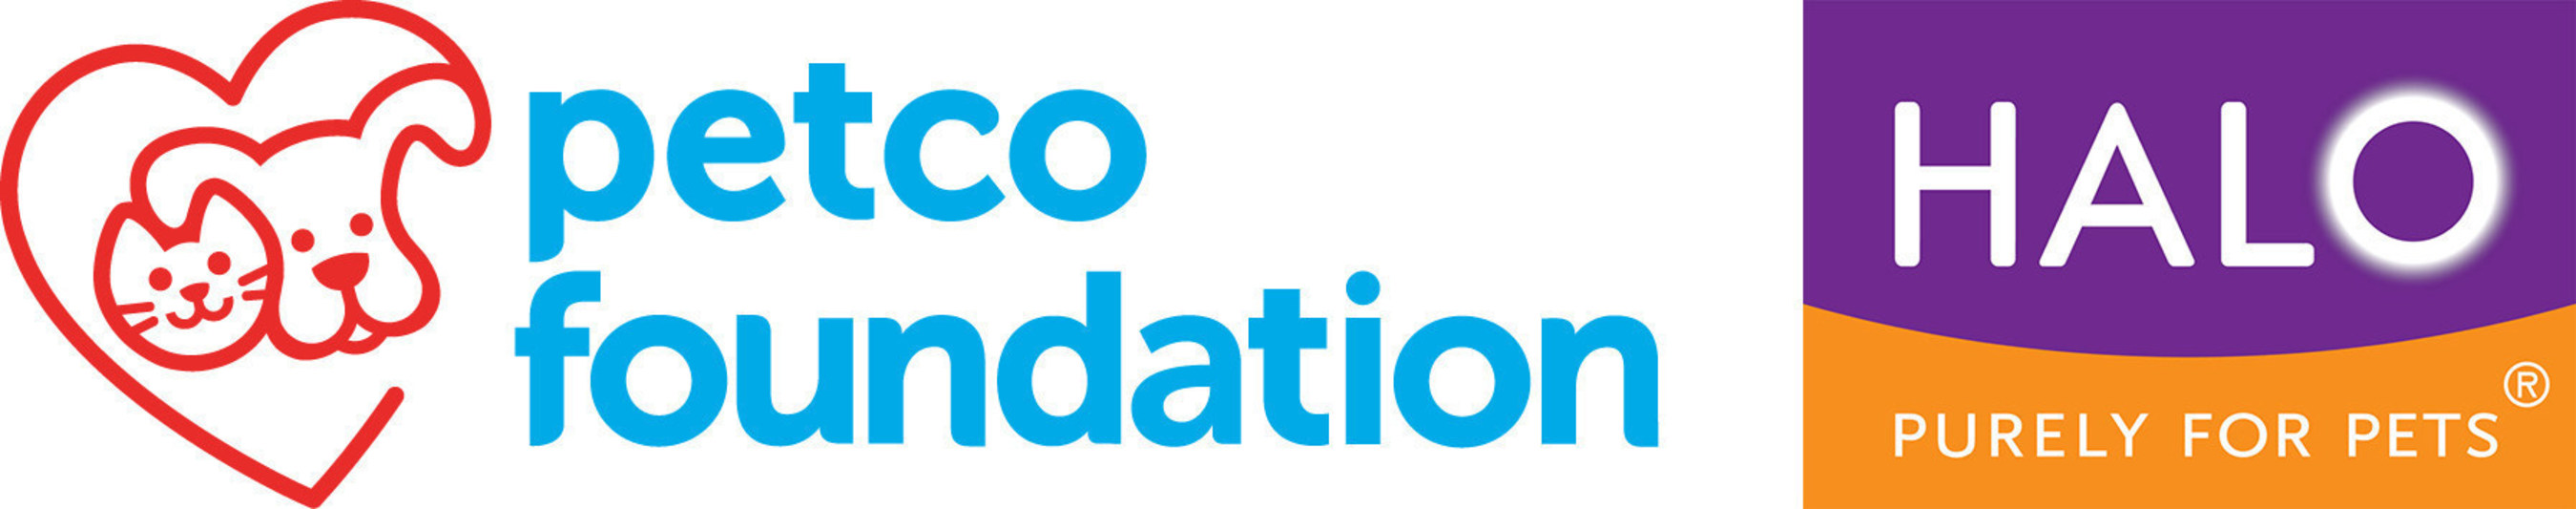 The Petco Foundation, in partnership with Halo, Purely for Pets, announced the winners of its third annual ...